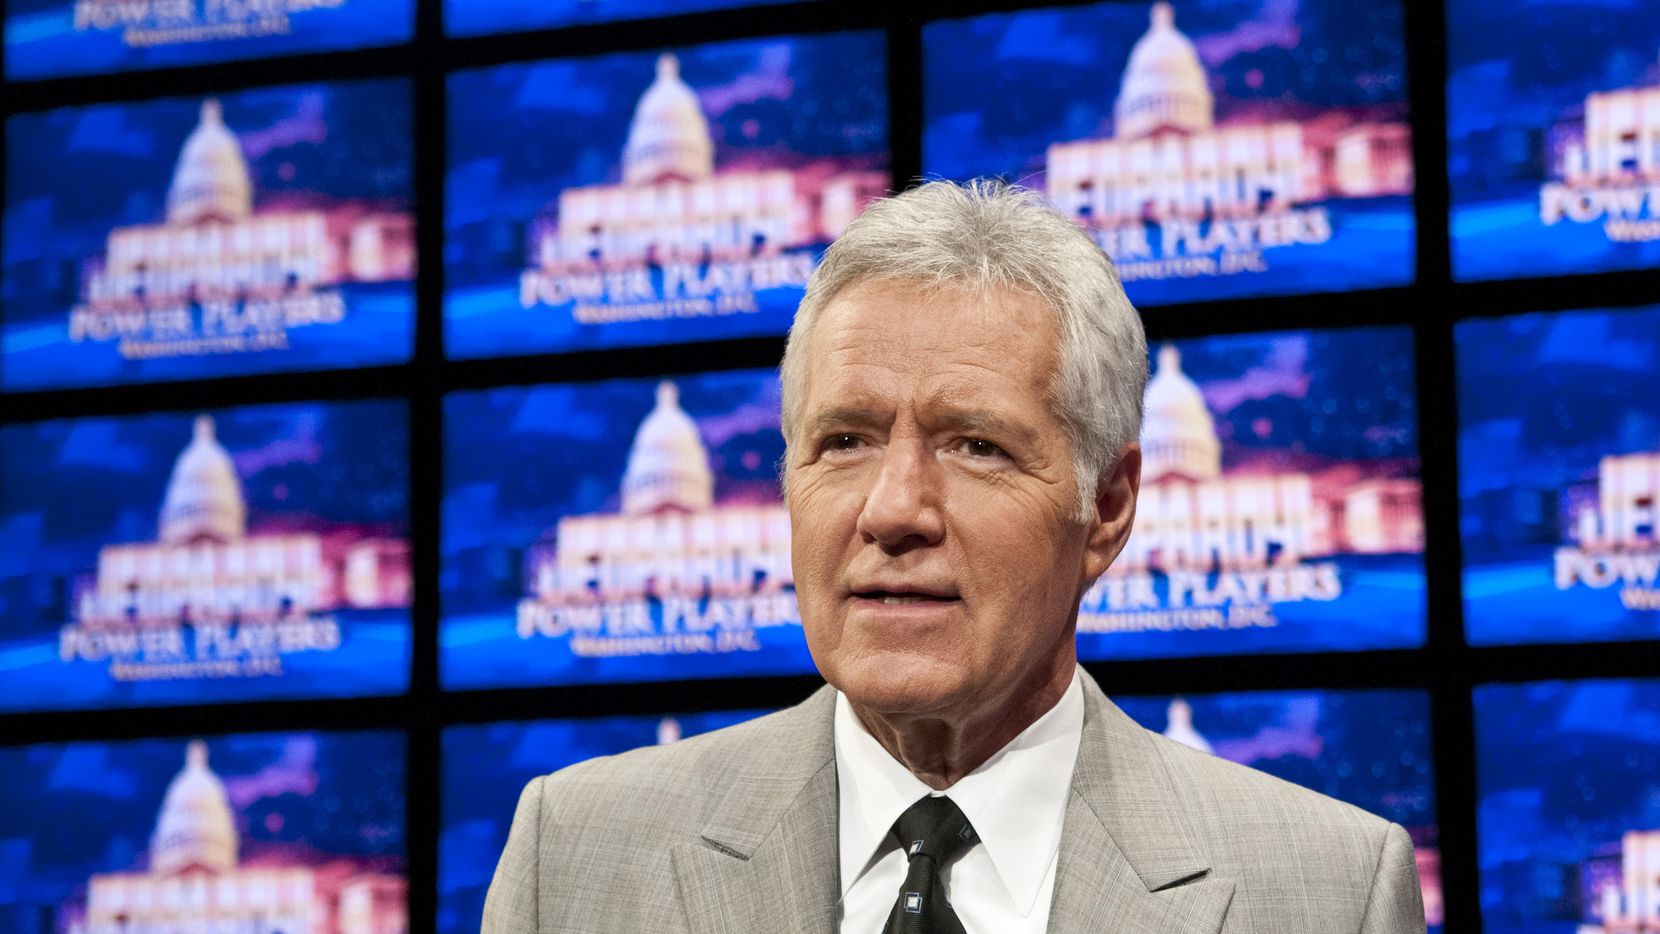 Alex Trebek, diagnosed last year with Stage 4 pancreatic cancer, died Sunday at home with his family. He was 80.